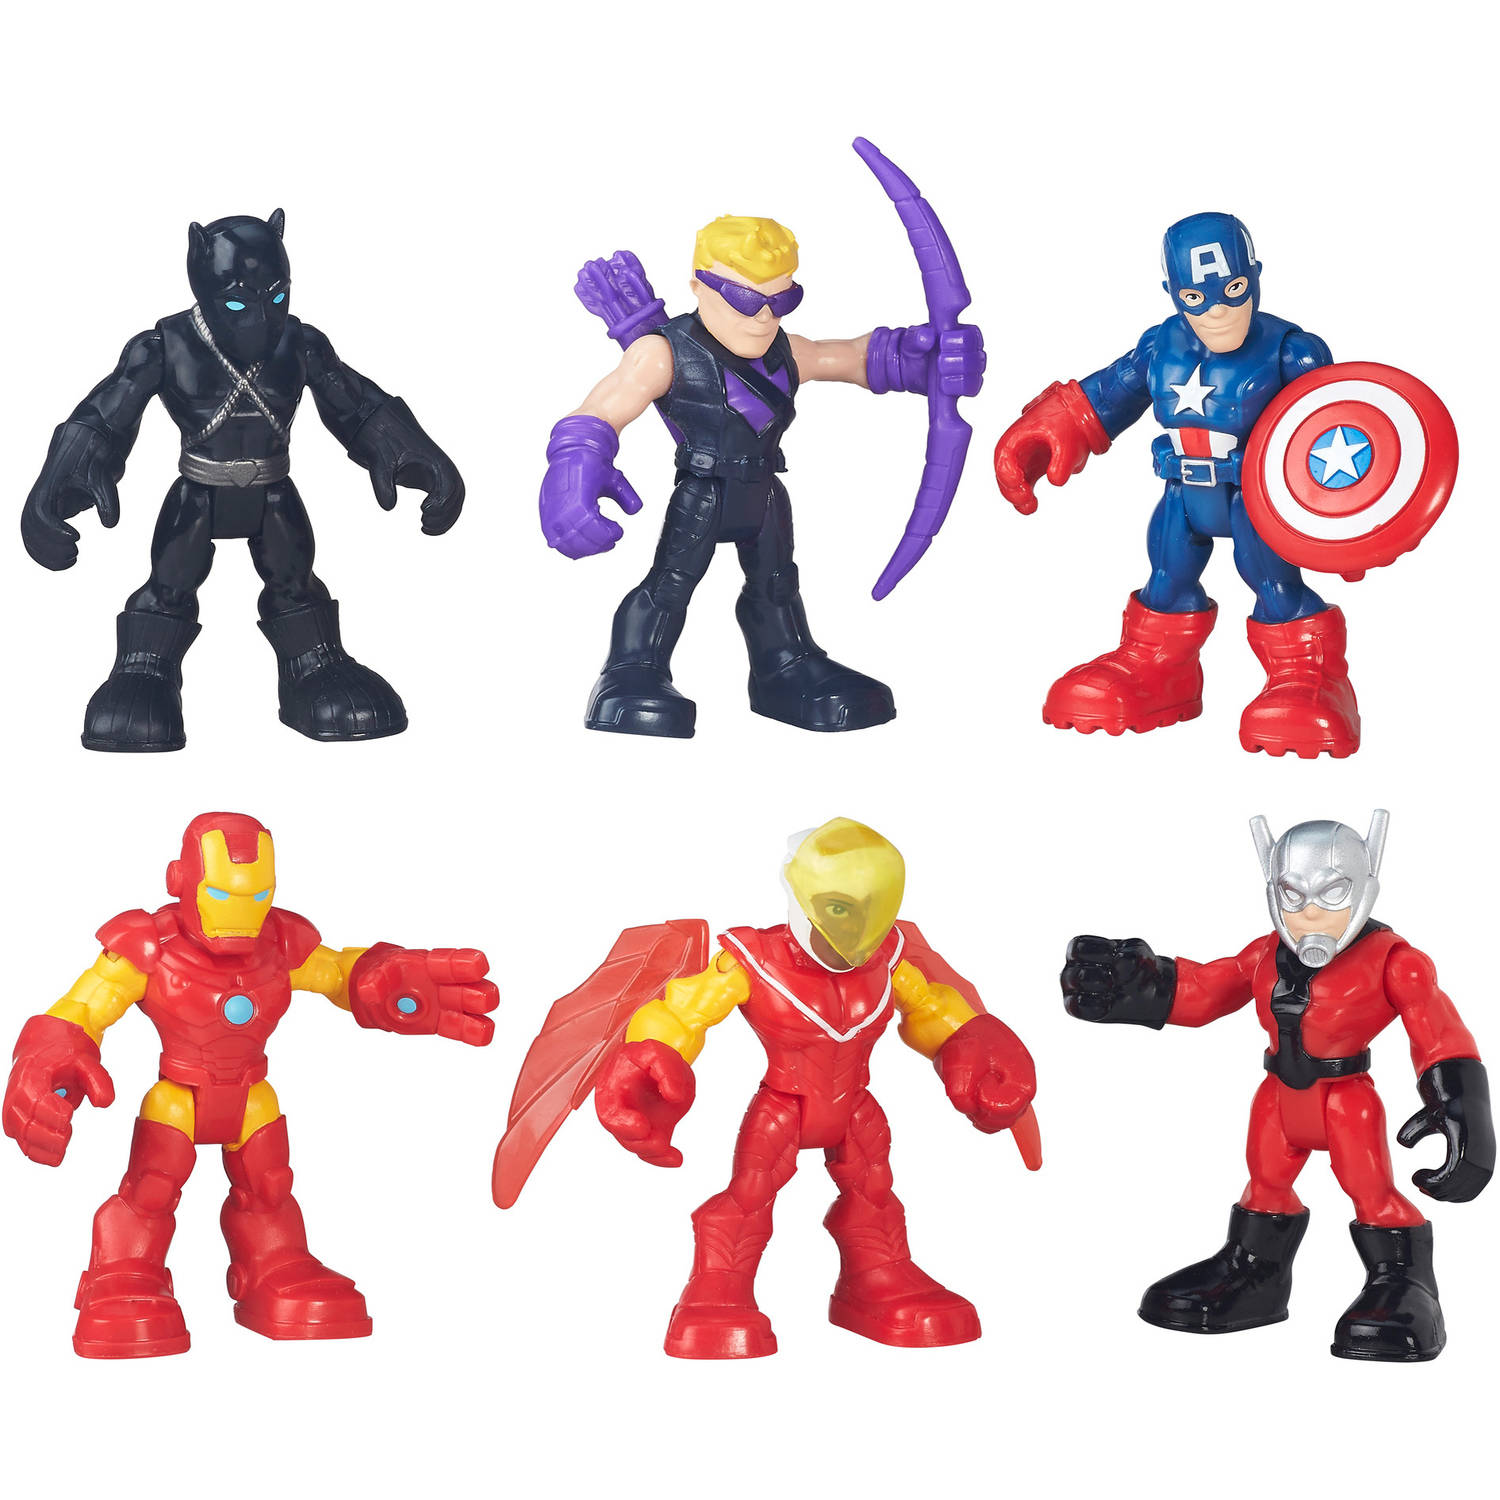 Playskool Heroes Marvel Super Hero Adventures Captain America Jungle Adventure Team